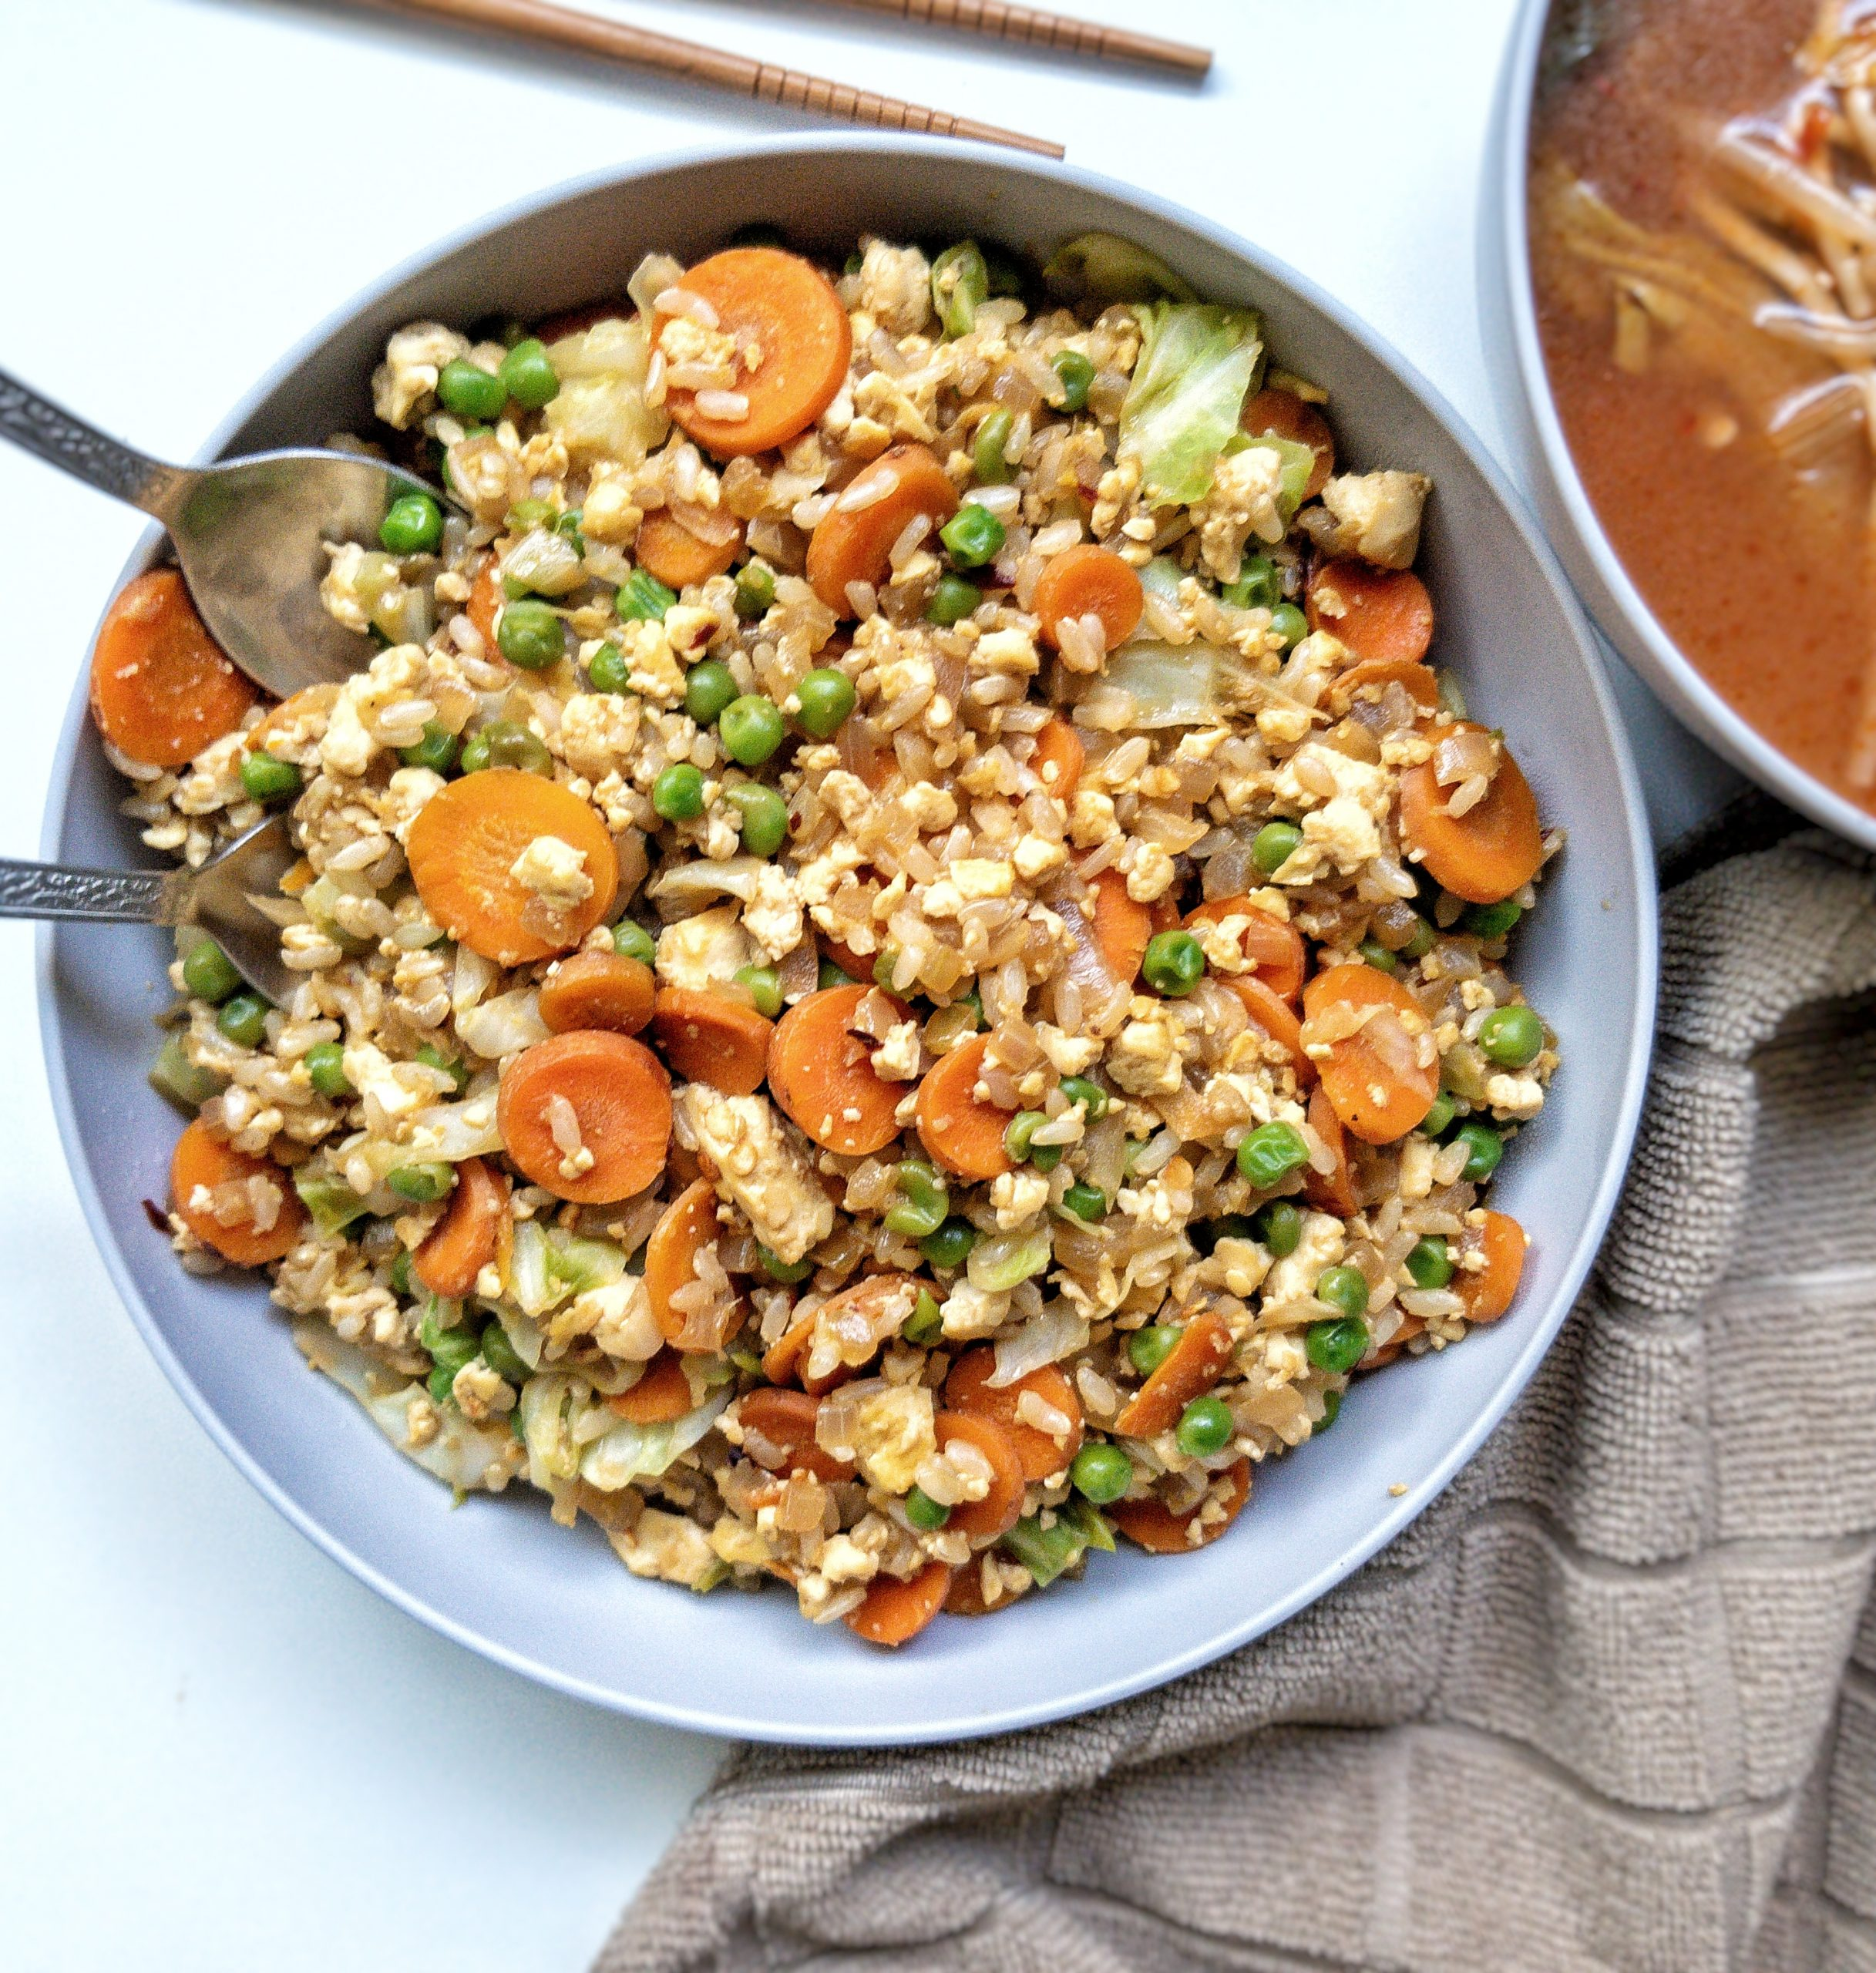 Vegan fried rice with carrots, peas, cabbage, and tofu scramble in a gray bowl